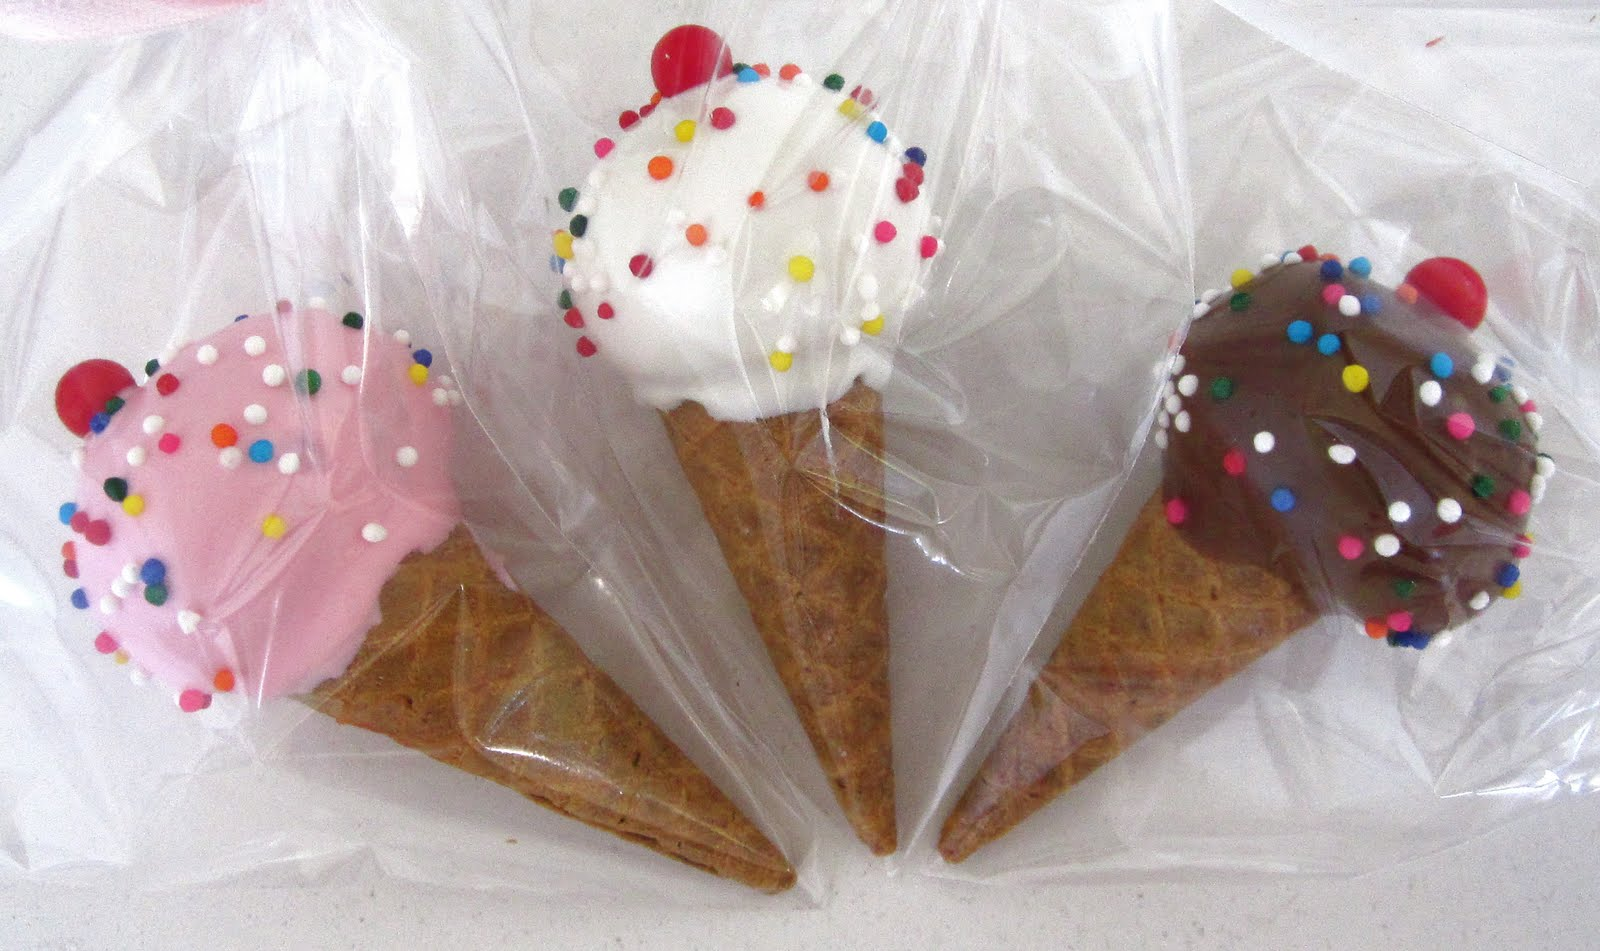 You can package them up once chocolate has set for a great party favor ...